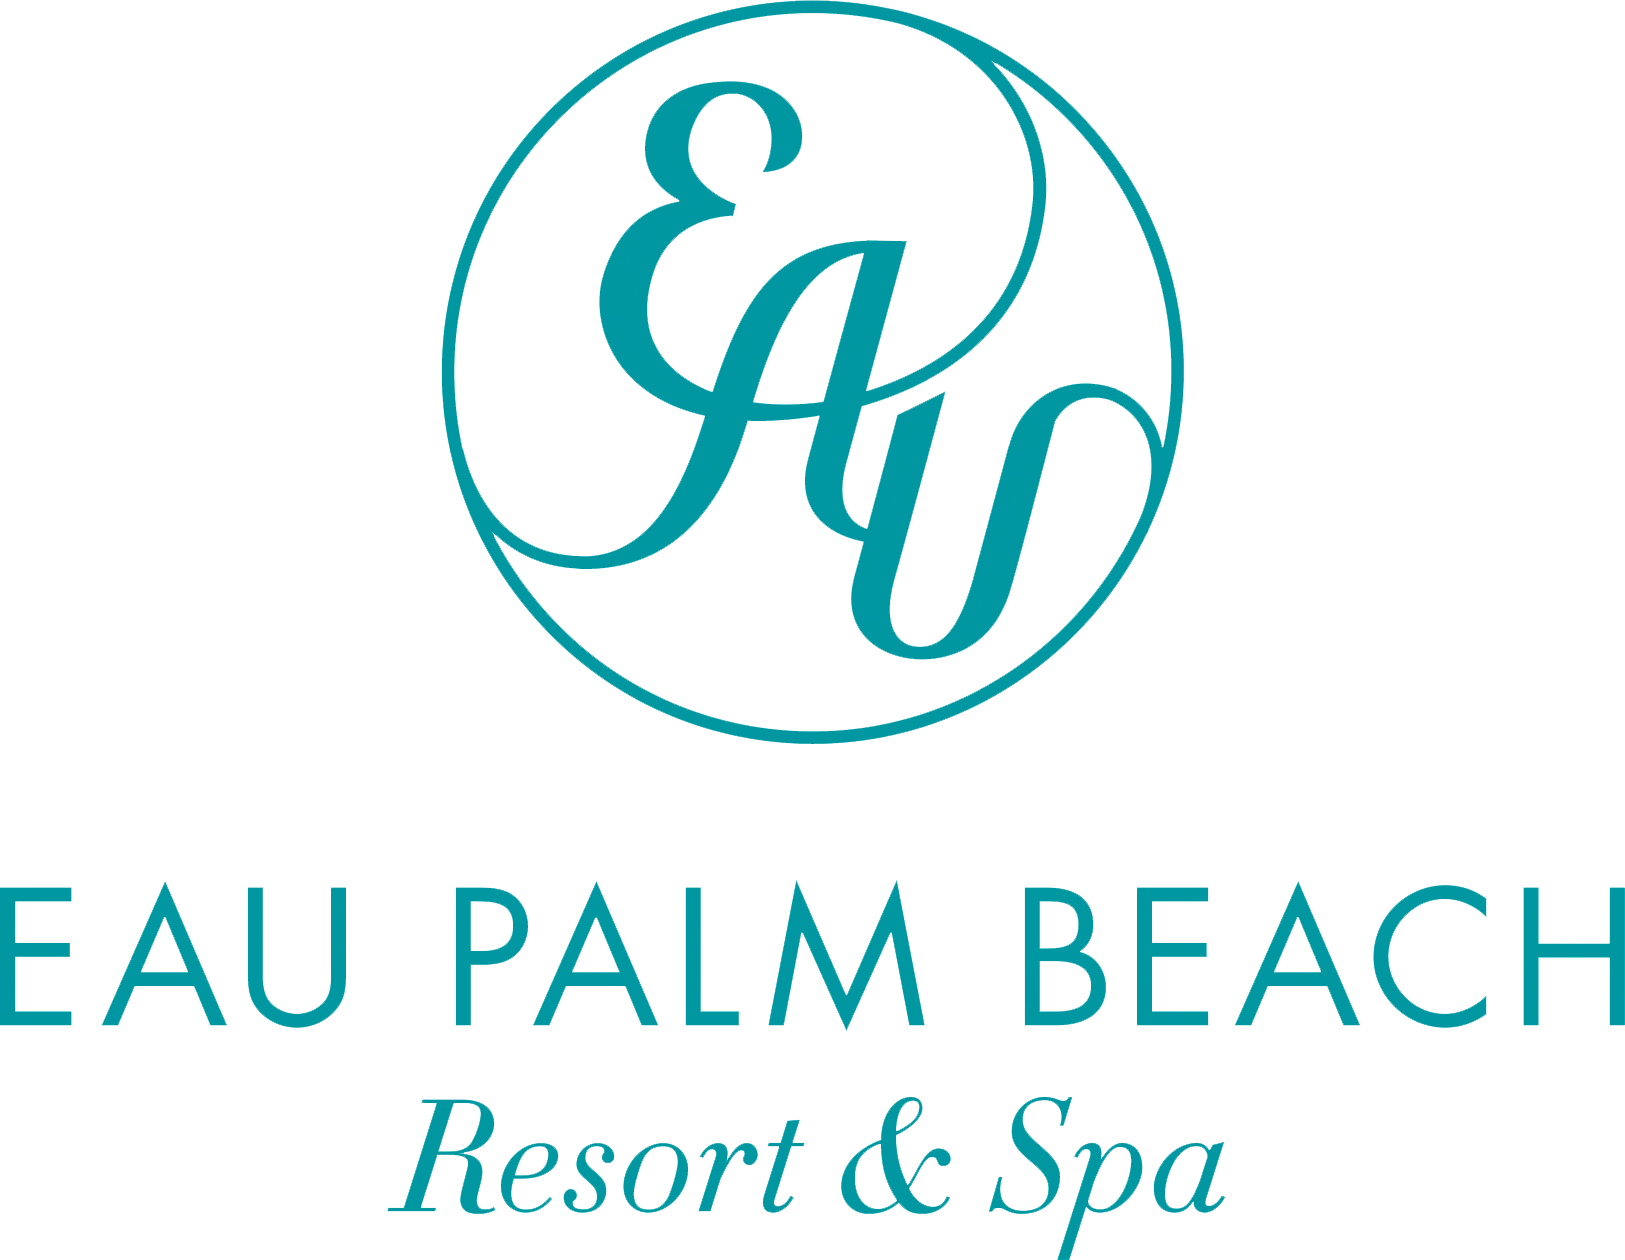 eau-palm-beach-resort-spa.png